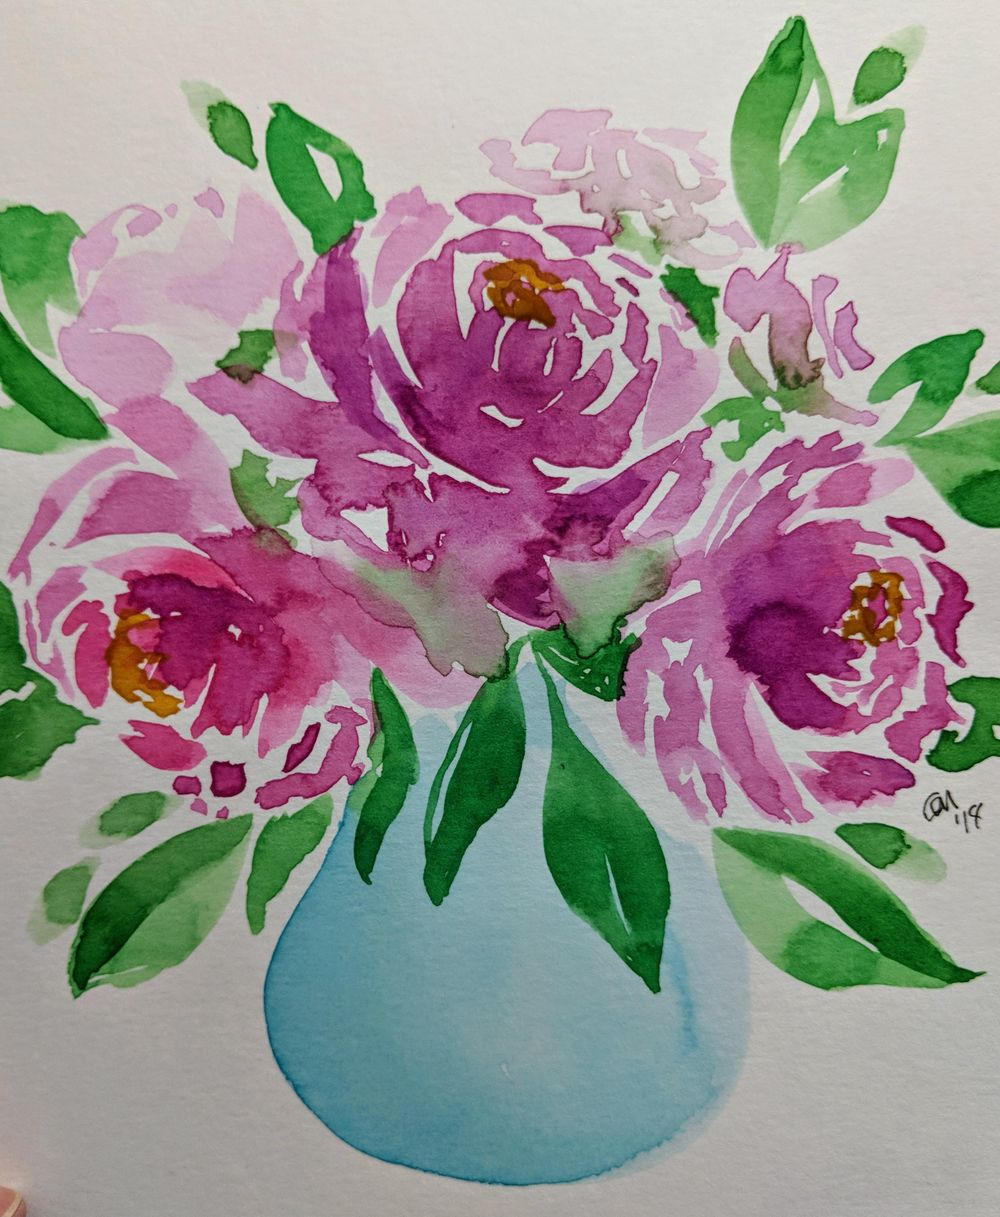 Loose Florals - image 3 - student project